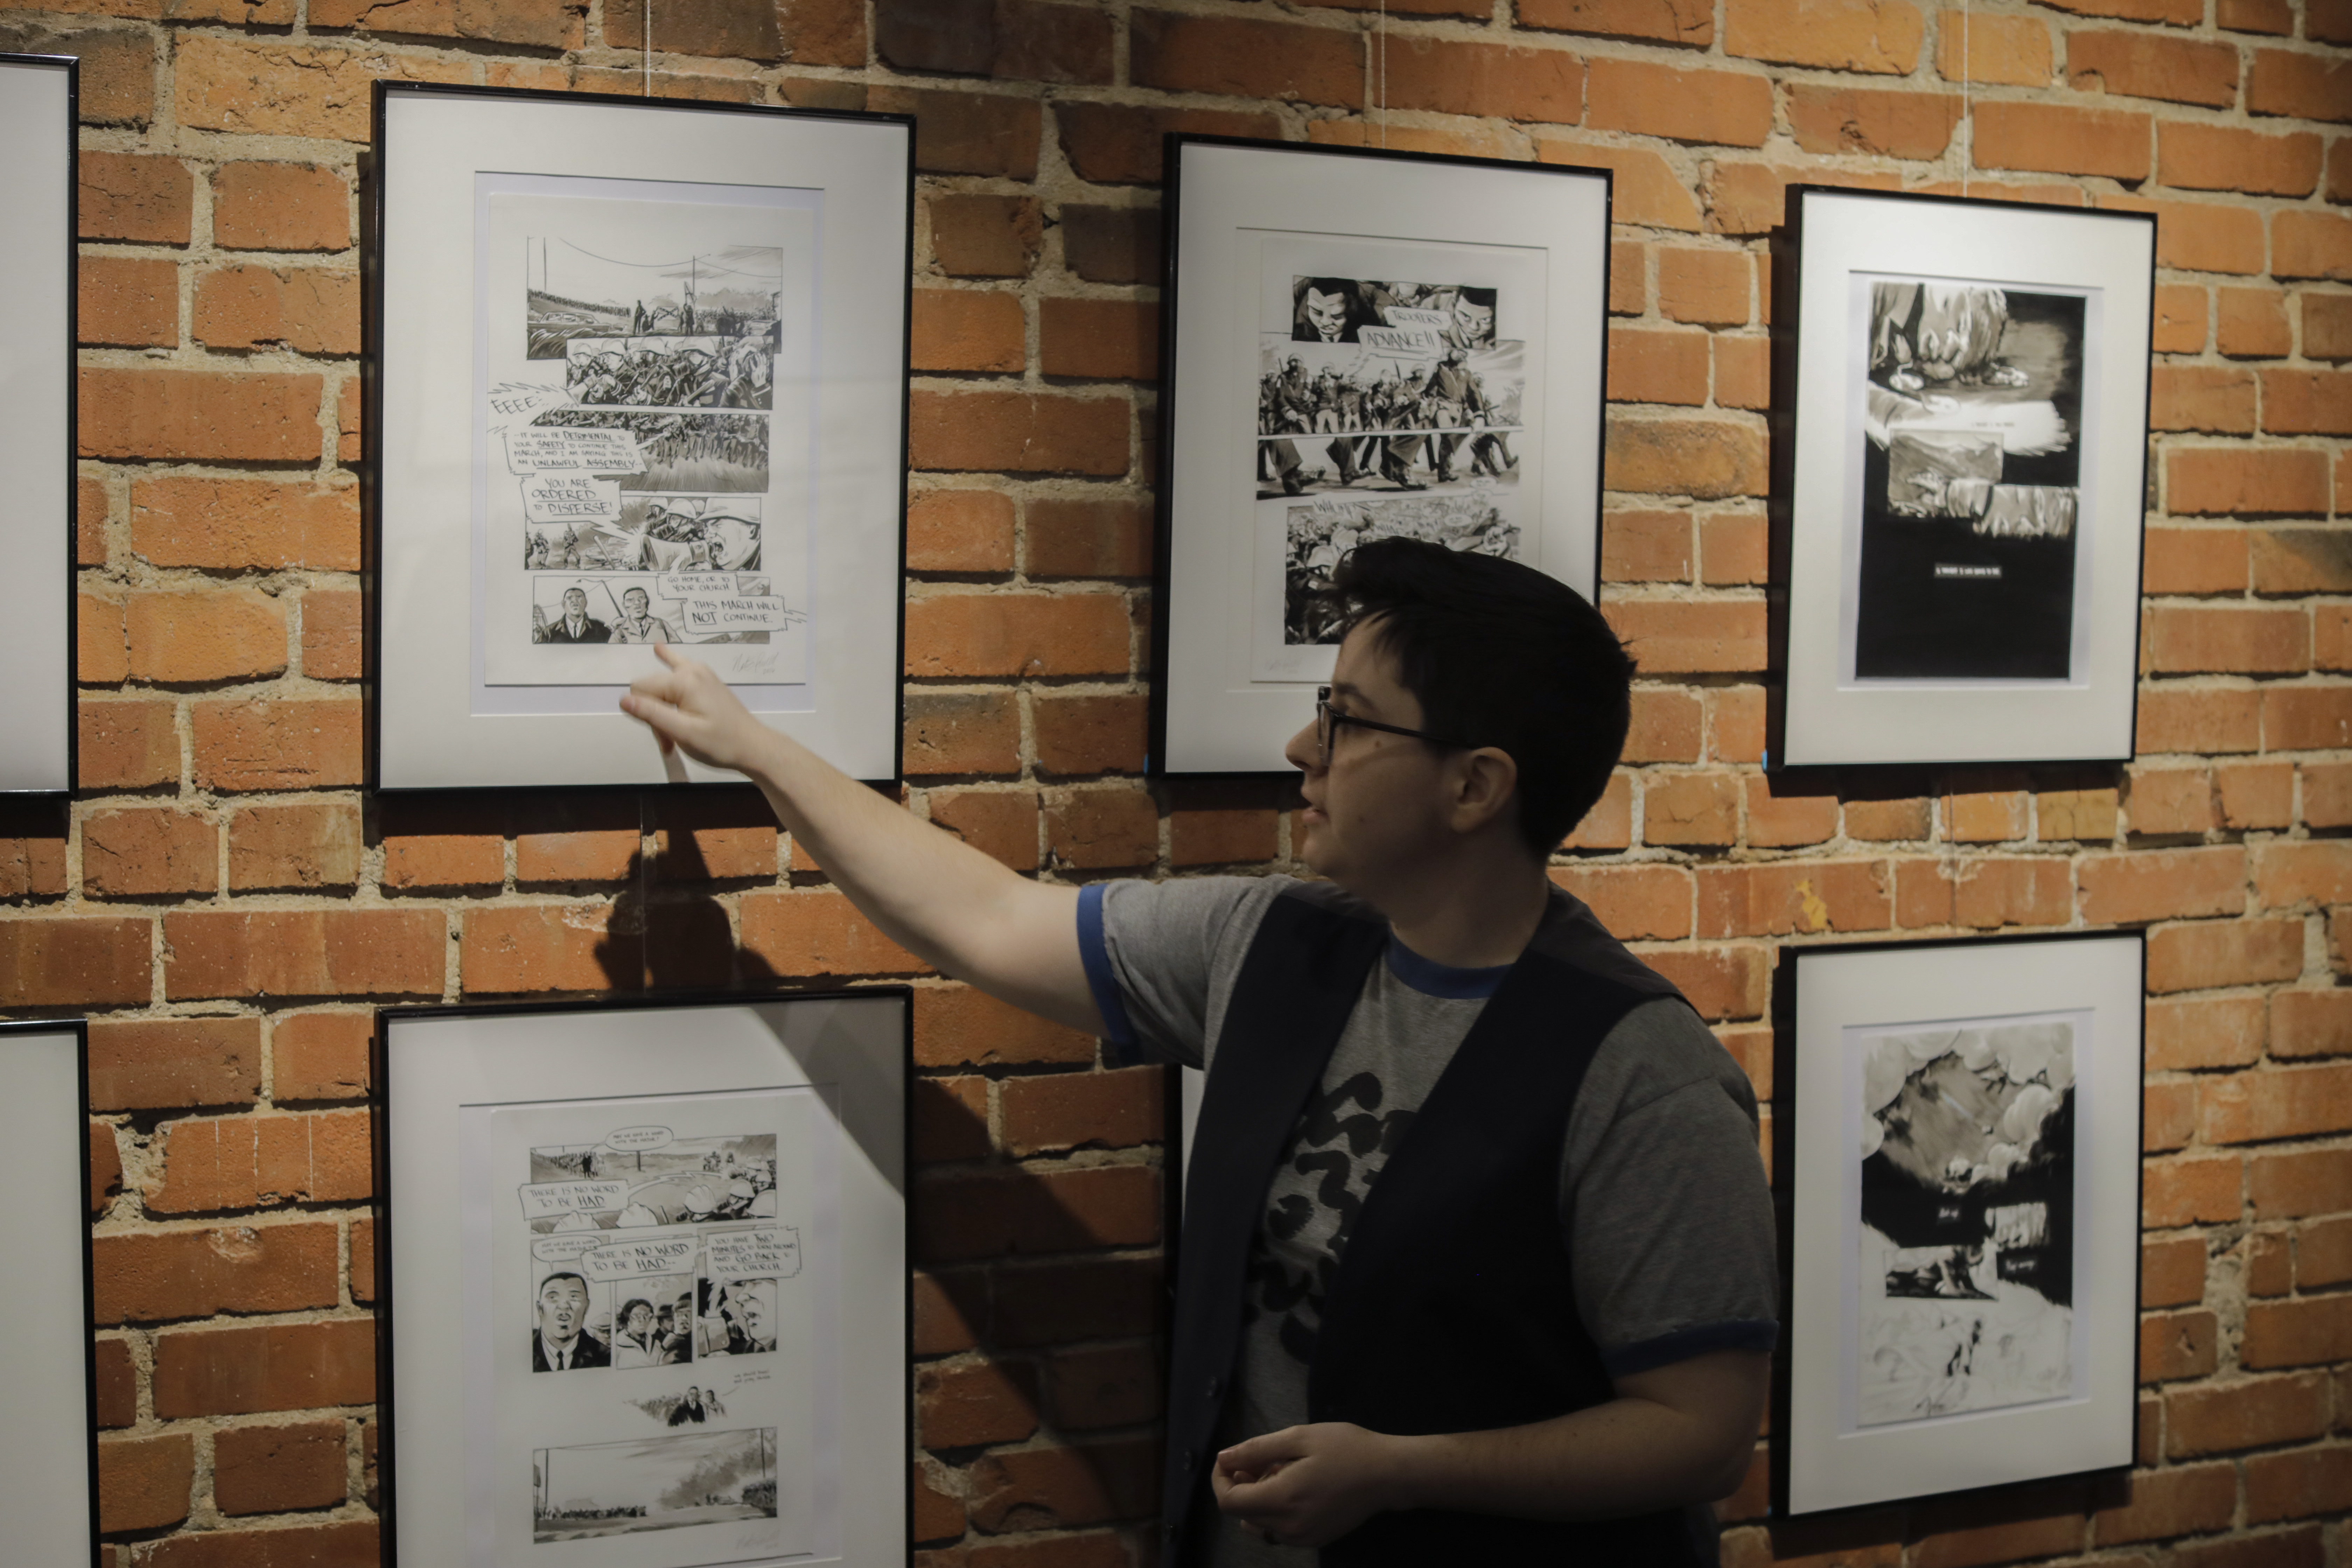 A man pointing to a picture on the brick wall.